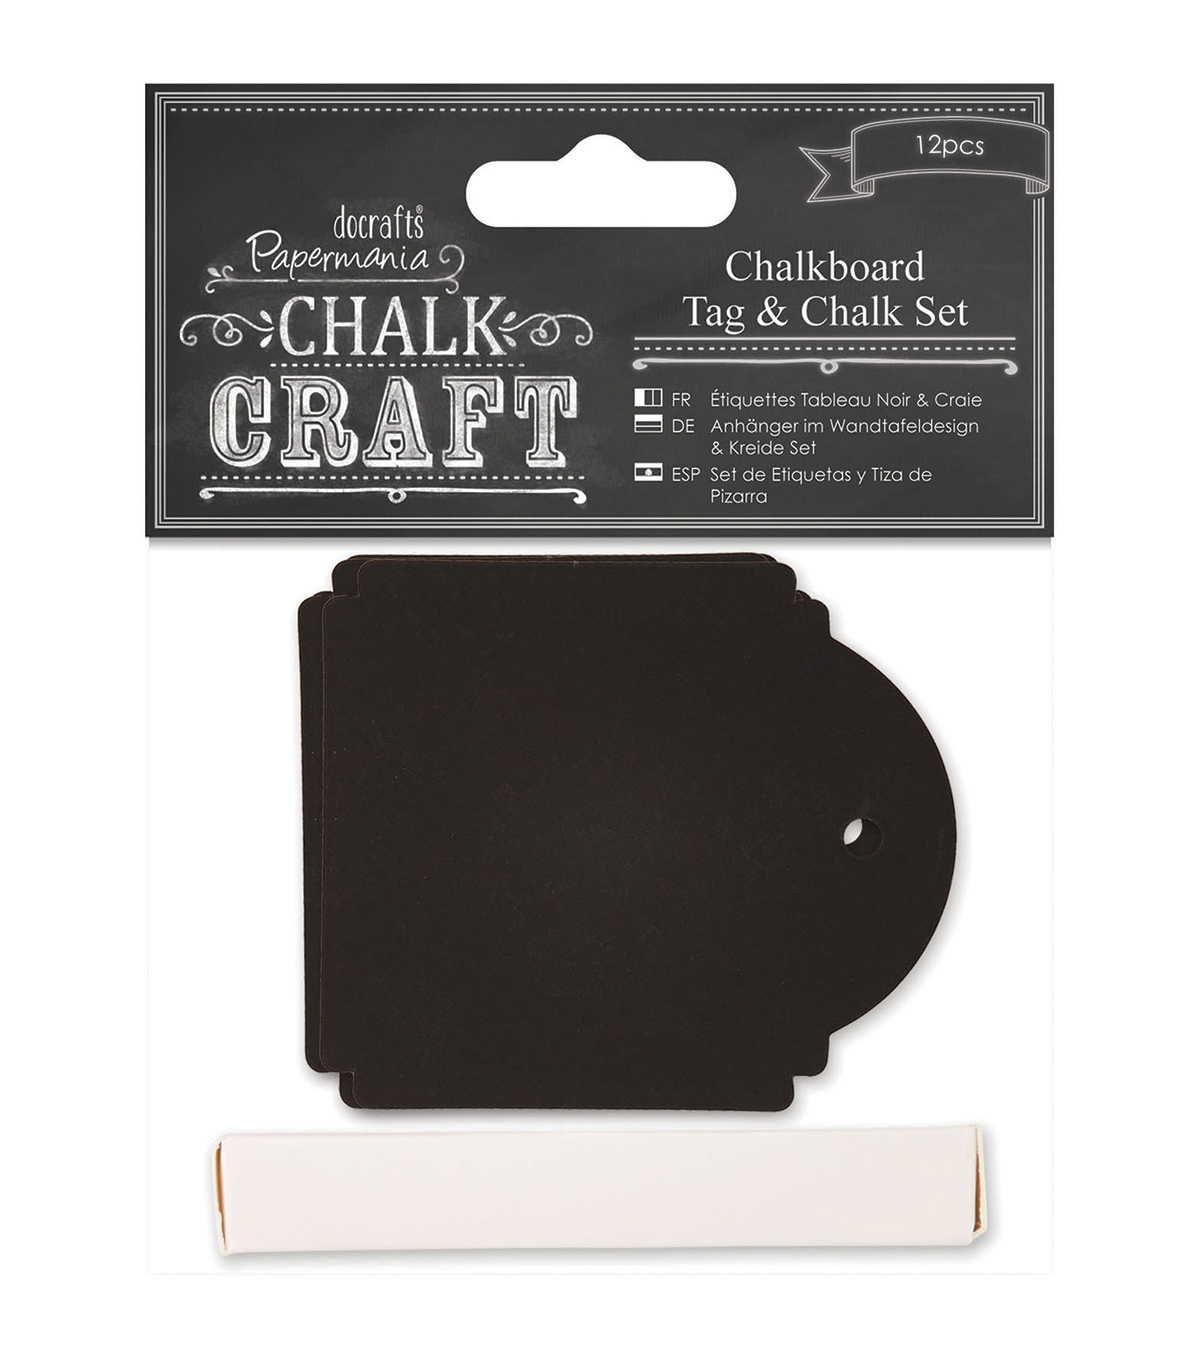 Papermania Chalk Craft Square Chalkboard Tag & Chalk Set